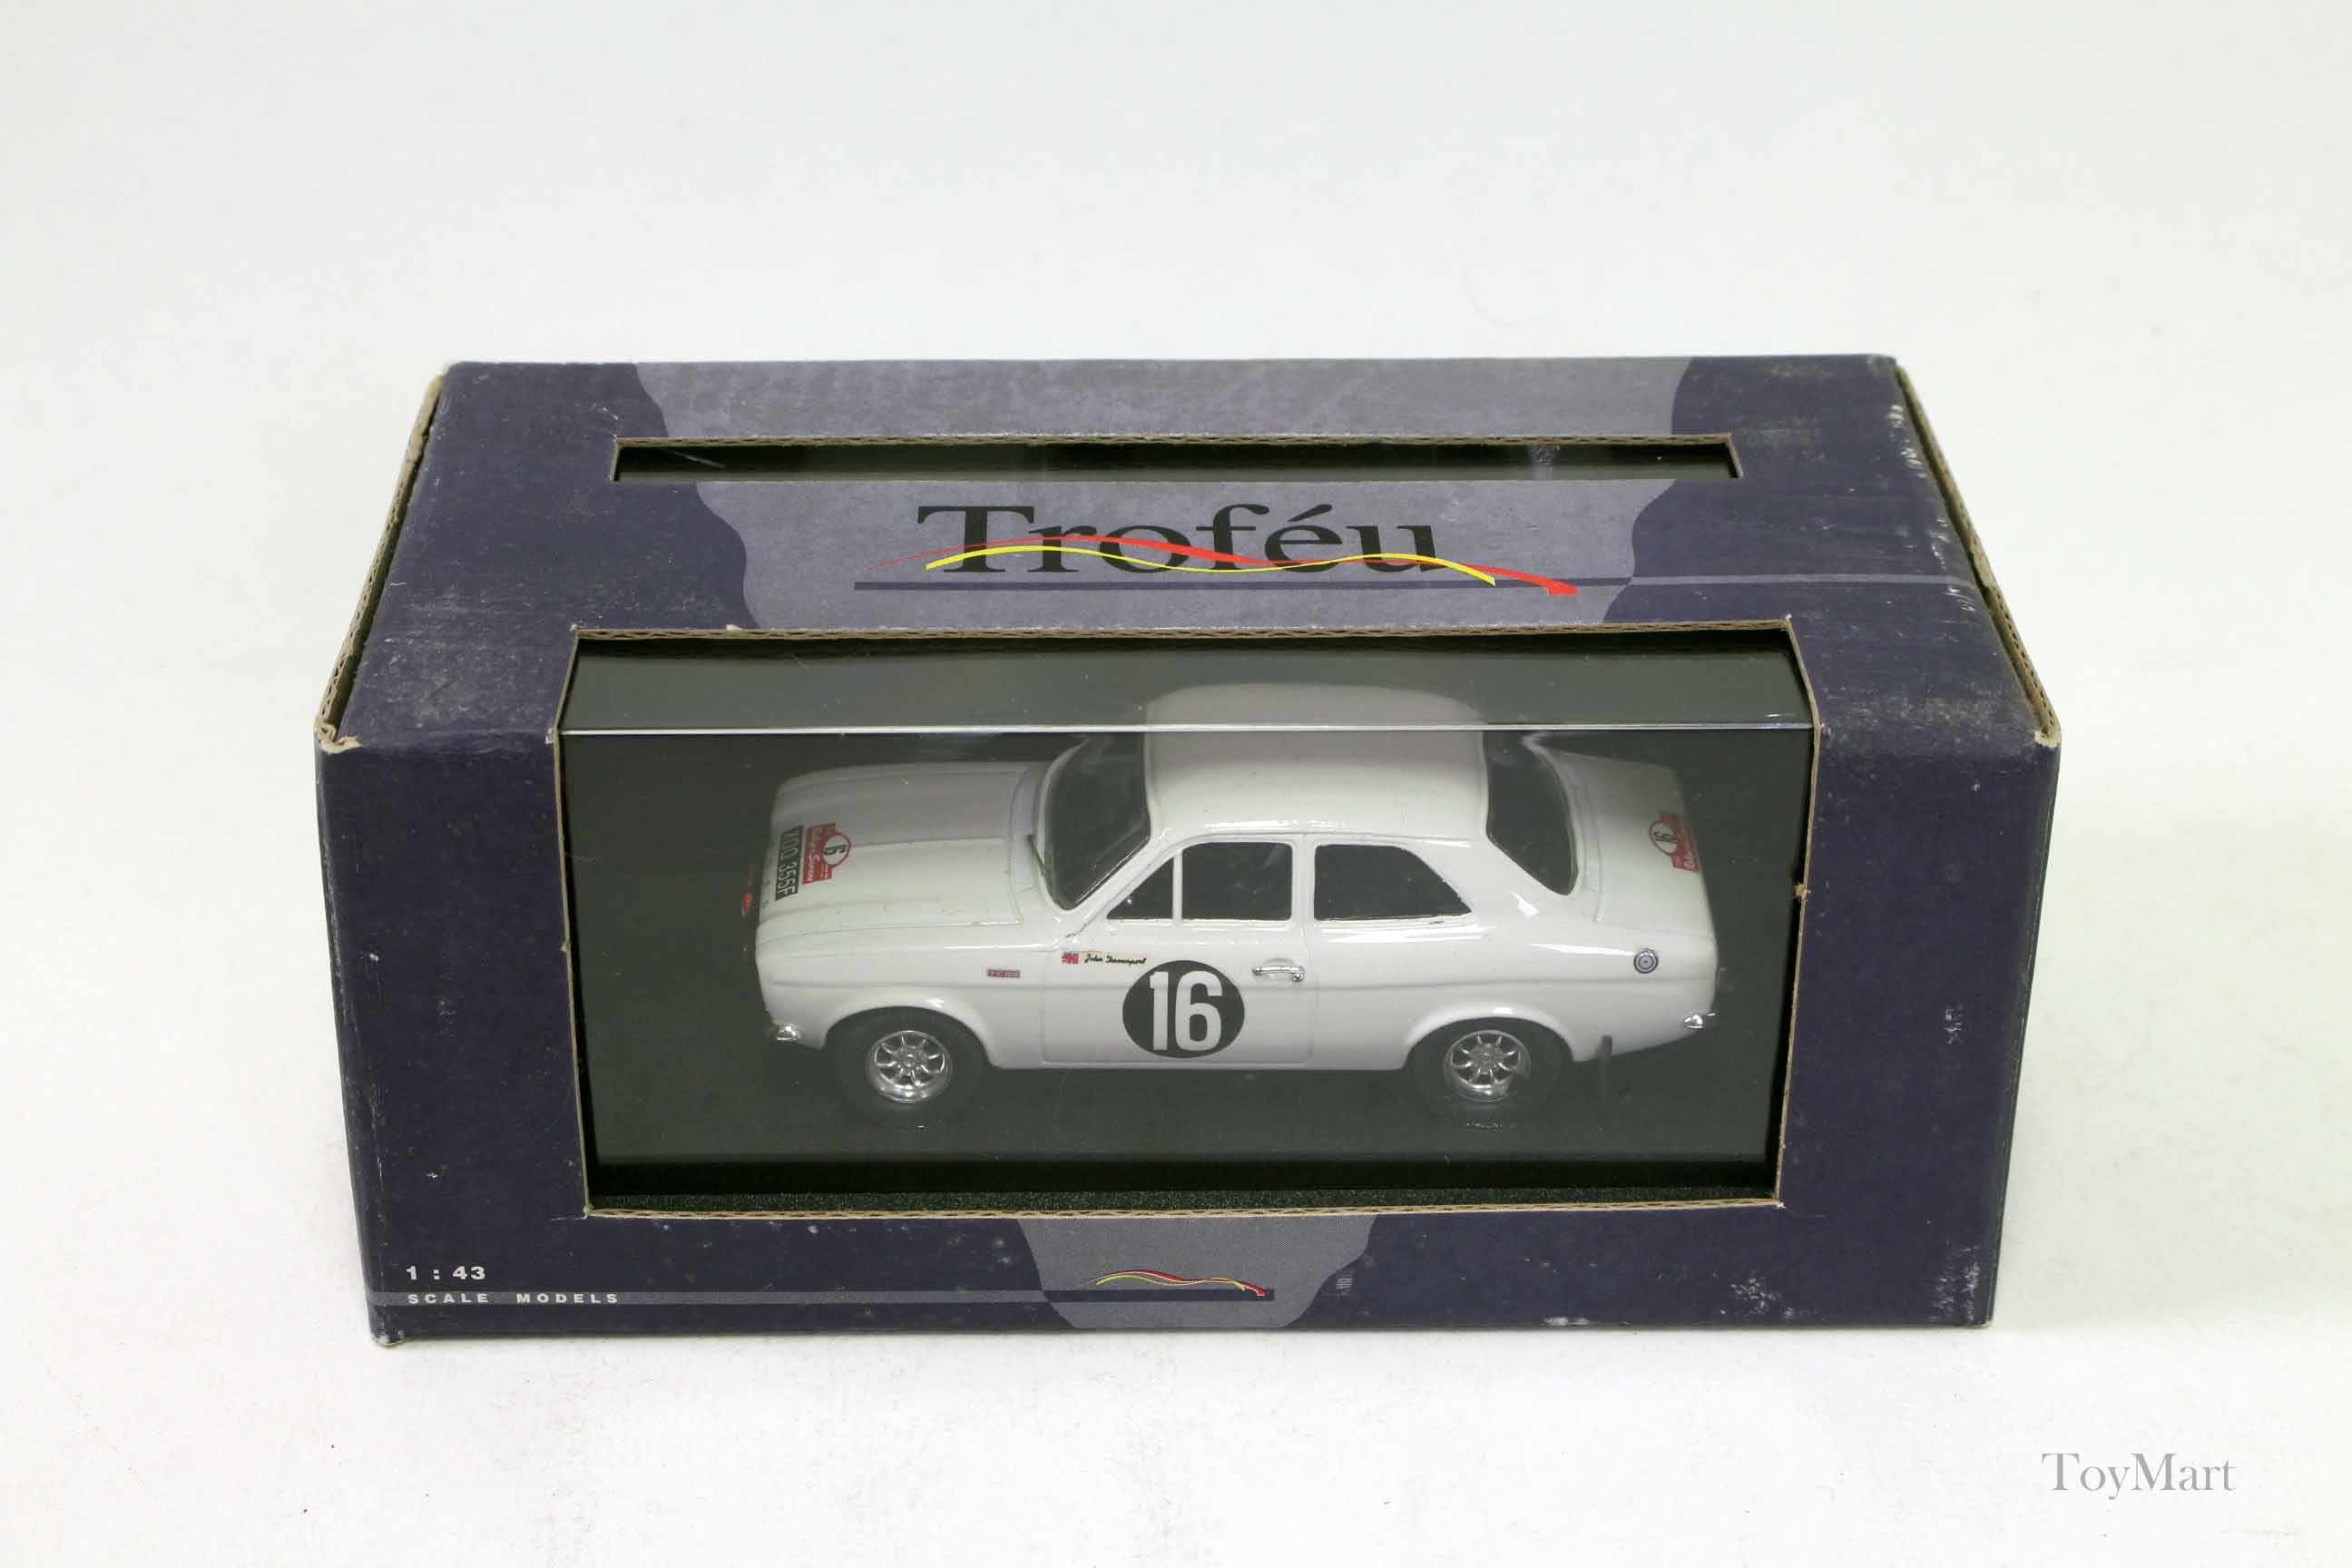 Picture Gallery for Trofeu 504 Ford Escort 1600 TC